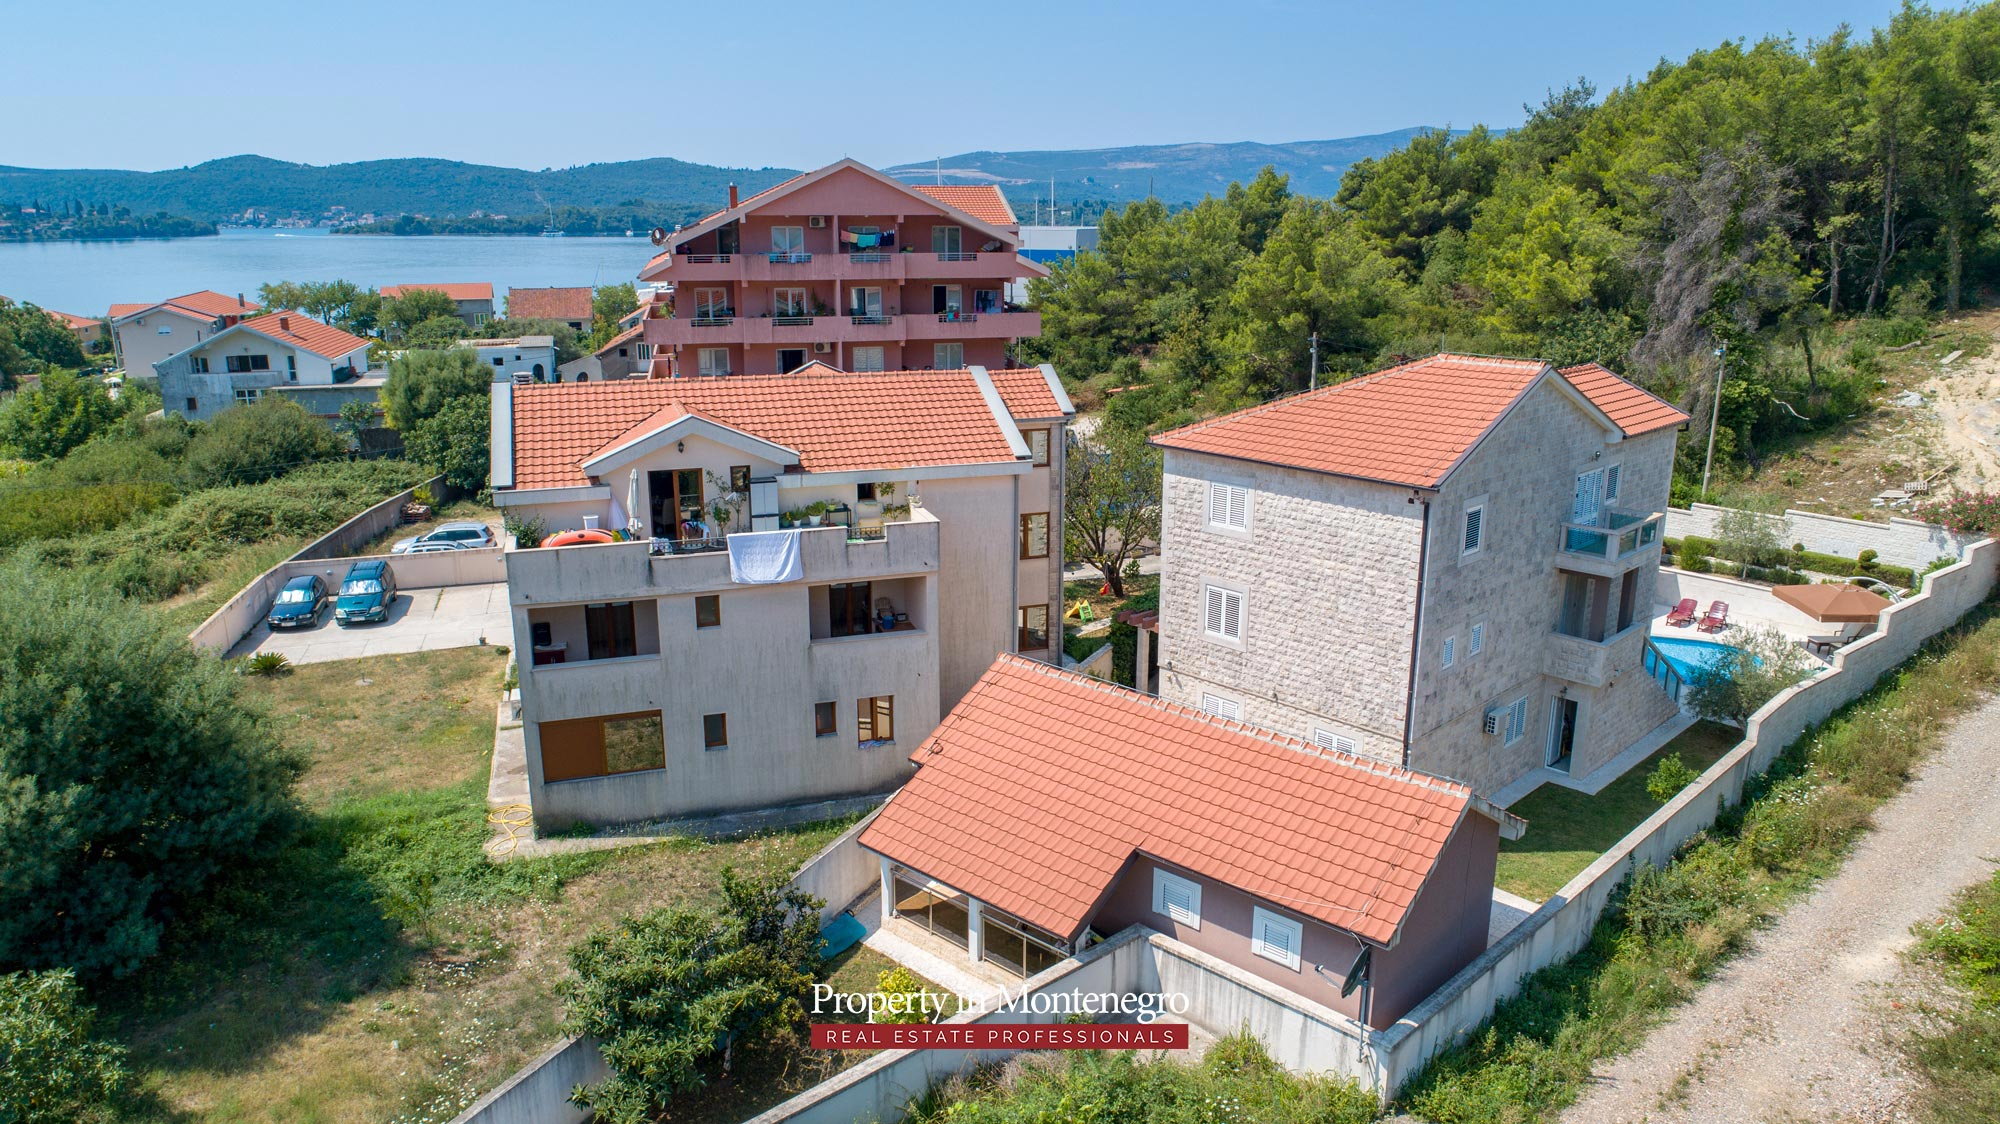 Villa-with-swimming-pool-for-sale-in-Tivat (7).jpg